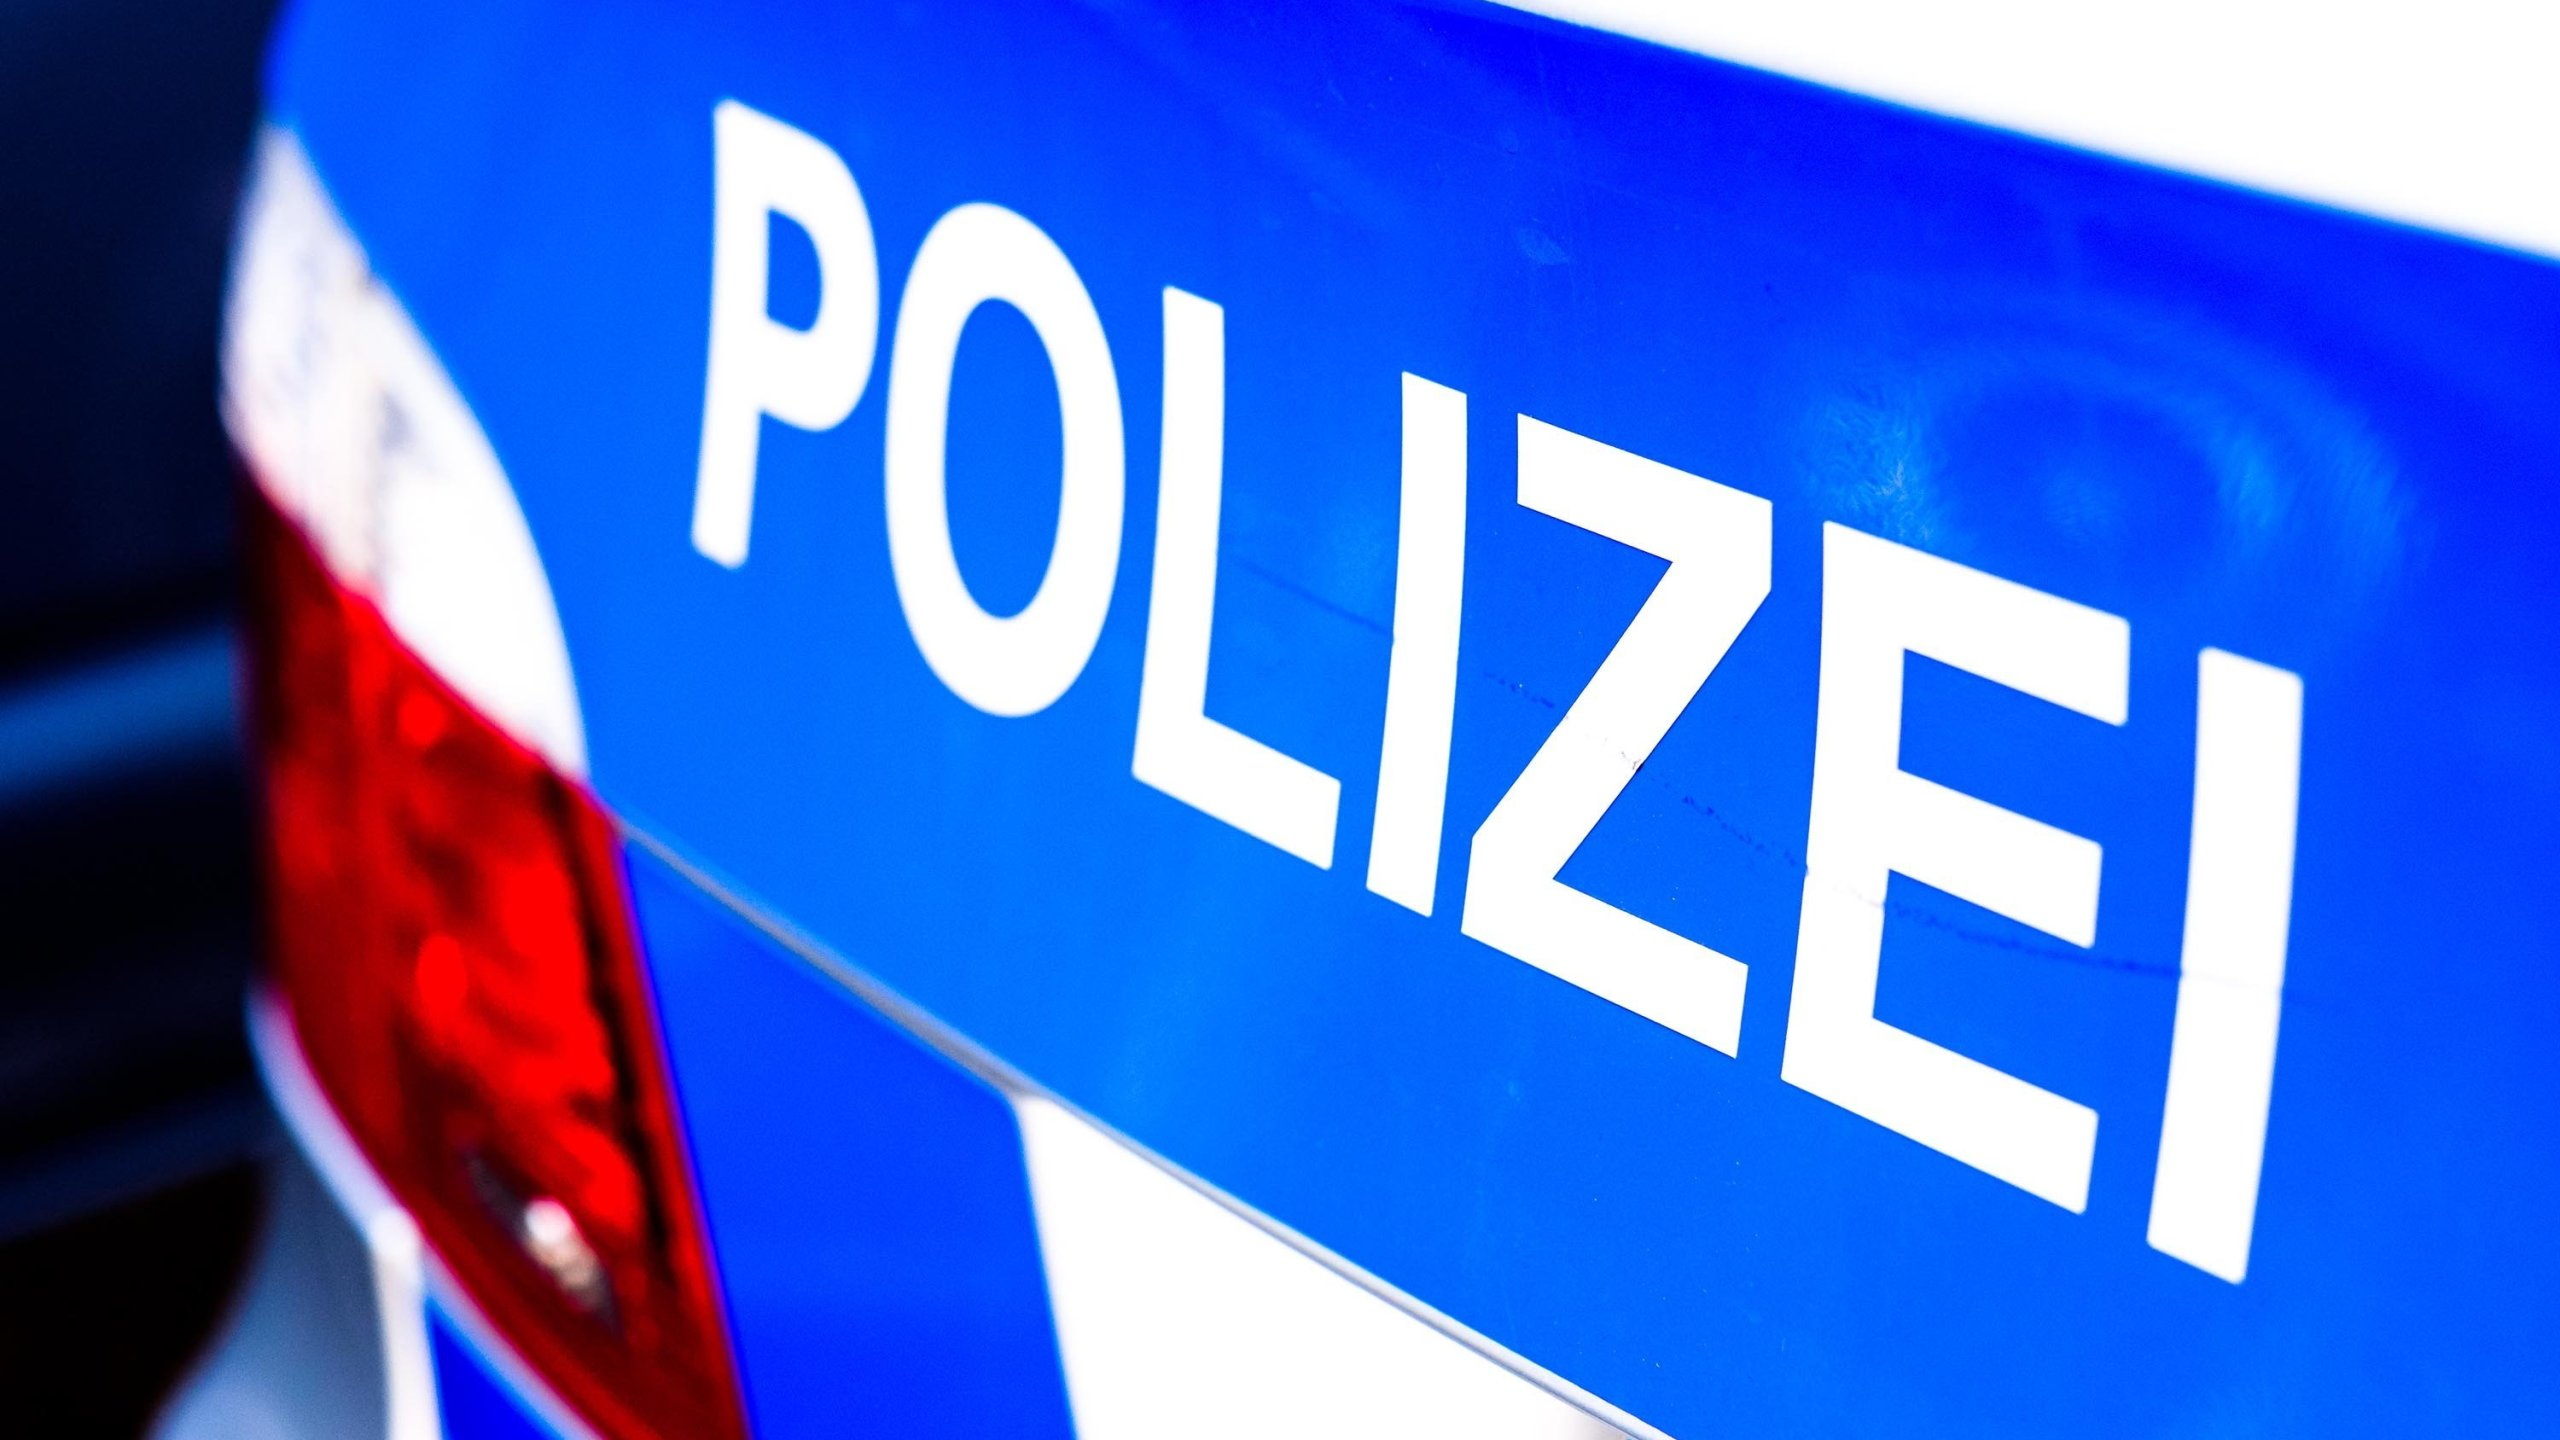 An 8-year-old German boy stole his mother's car and took it for a night time drive at 87 mph along a highway, local police have said. (Credit: Shutterstock via CNN Wire)